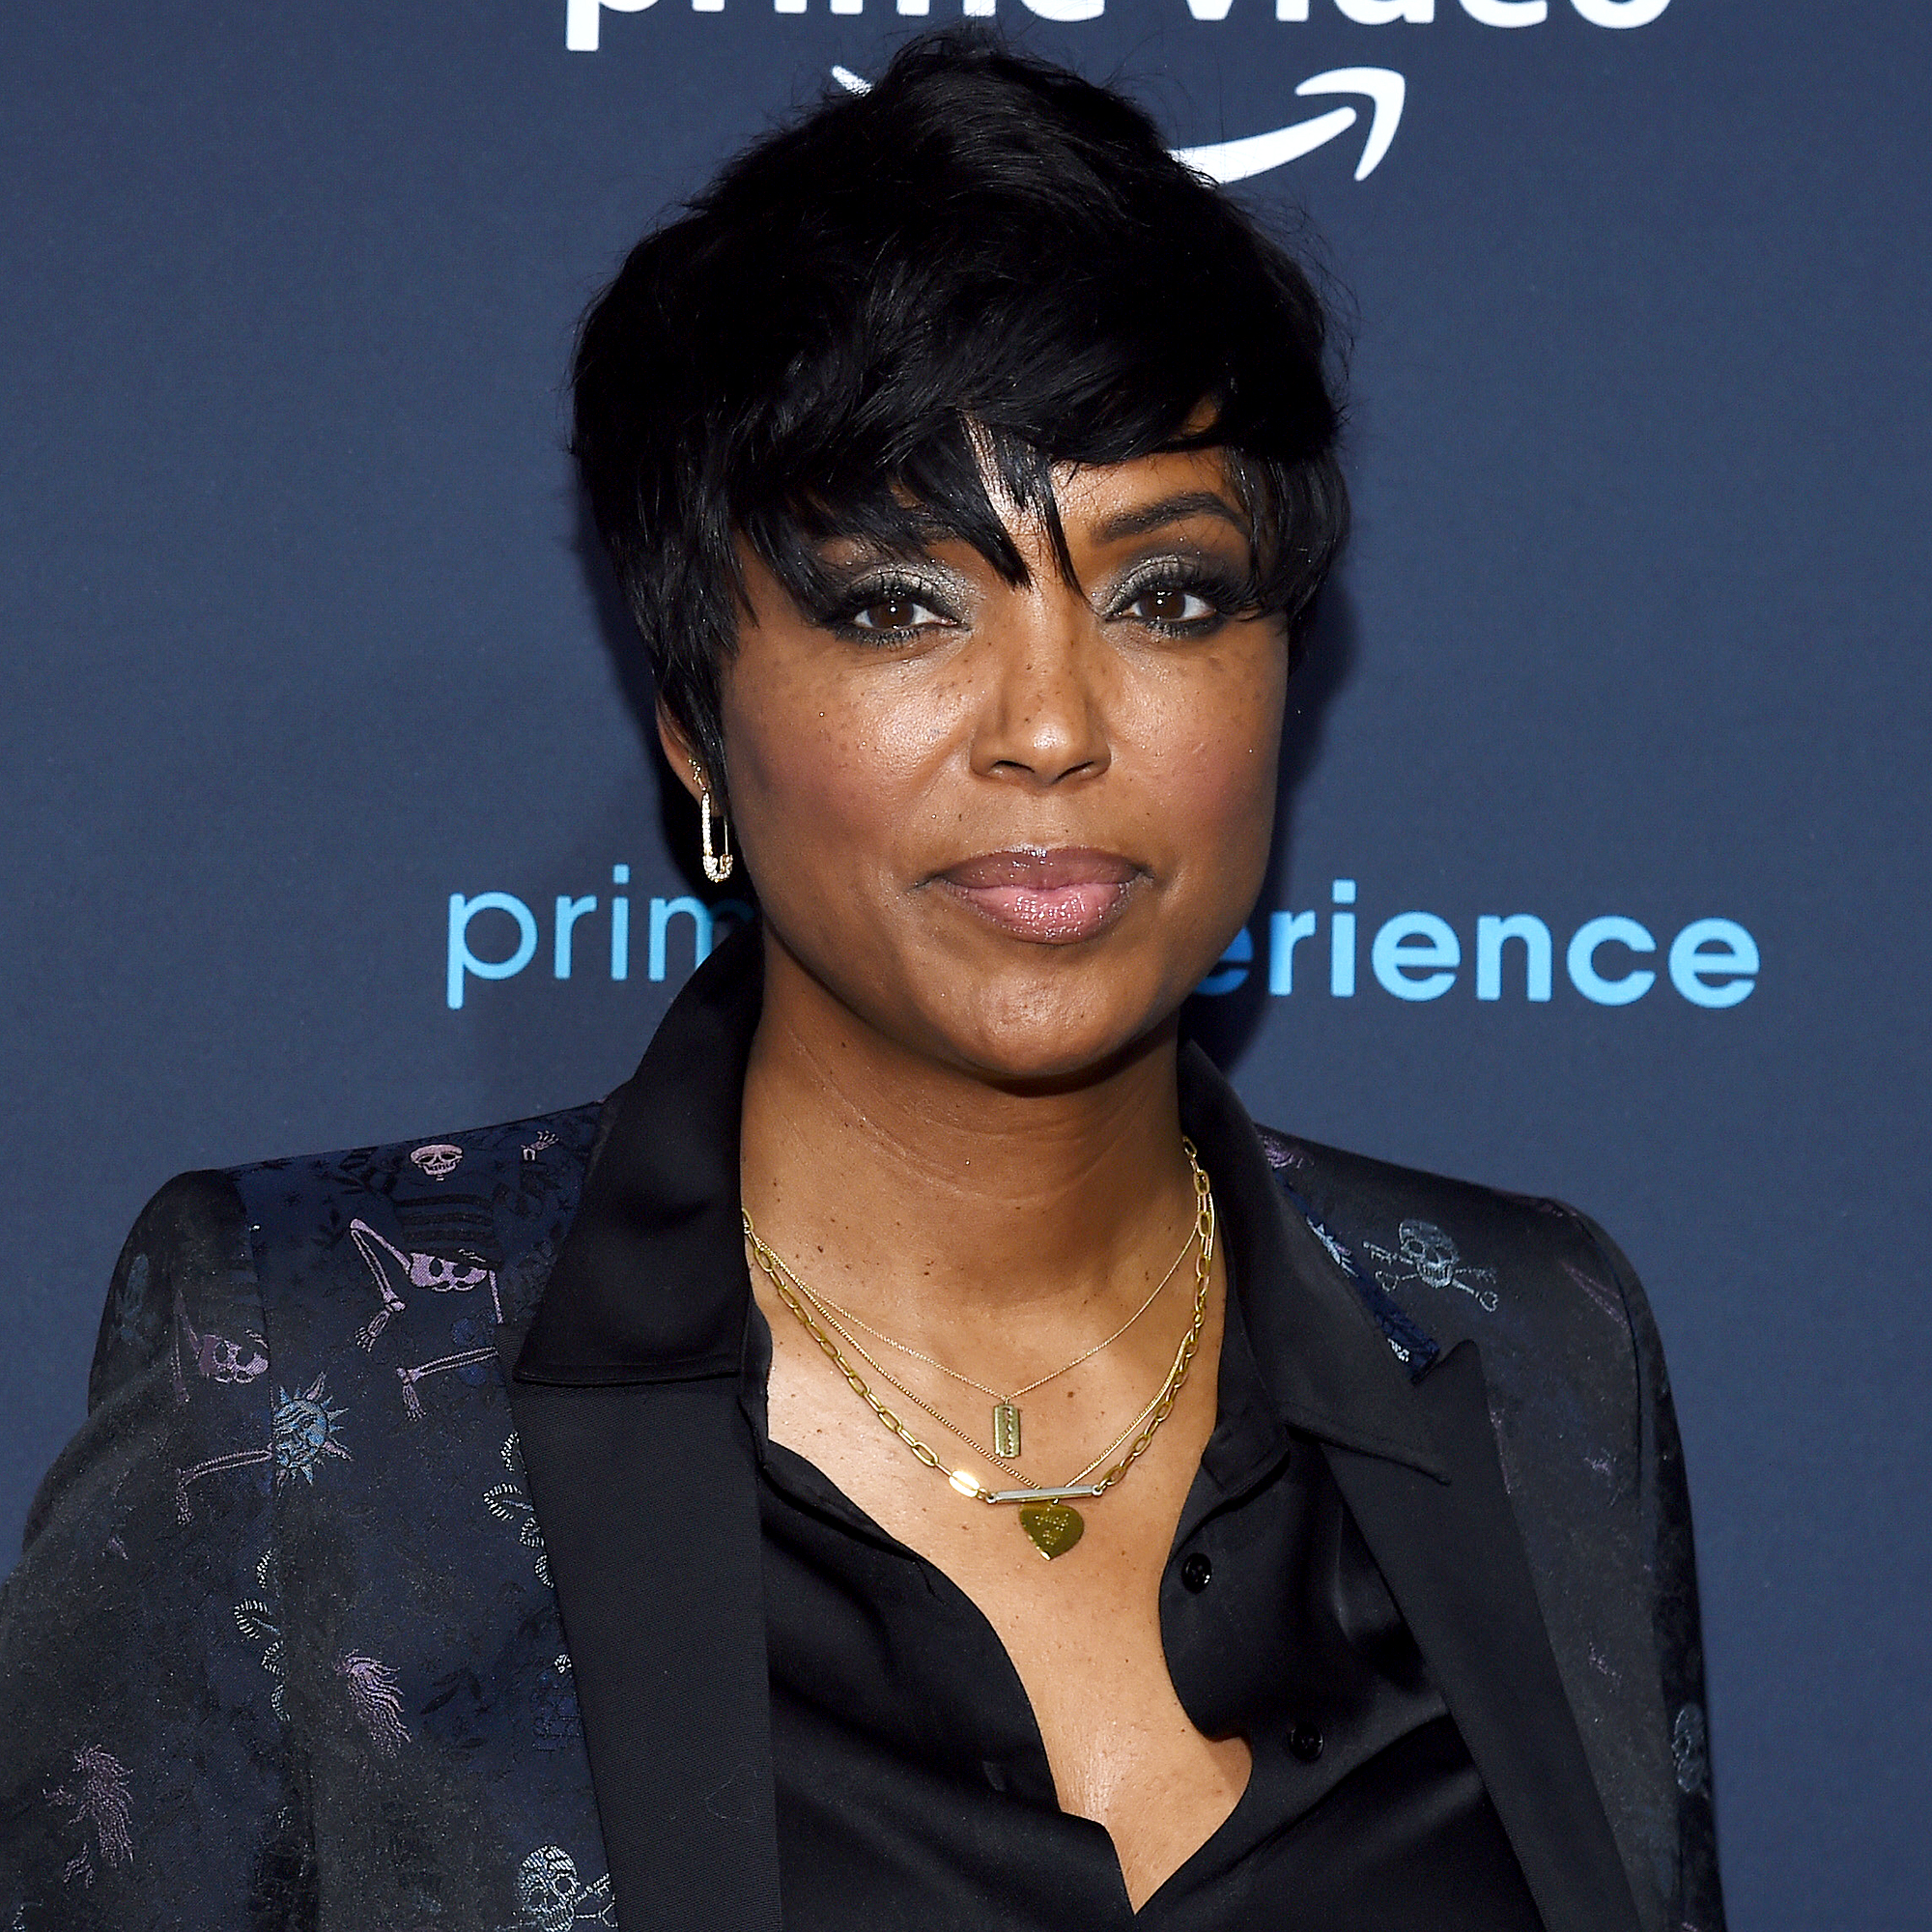 """Aisha-Tyler - Tyler pointed out that Singleton's impact on the world would be a lasting one. """"John Singleton changed so much not just for film audiences, who saw their lives reflected on screen in honest and tender ways, but for filmmakers of color. He broke records, he broke stereotypes, he broke barriers,"""" she tweeted ."""